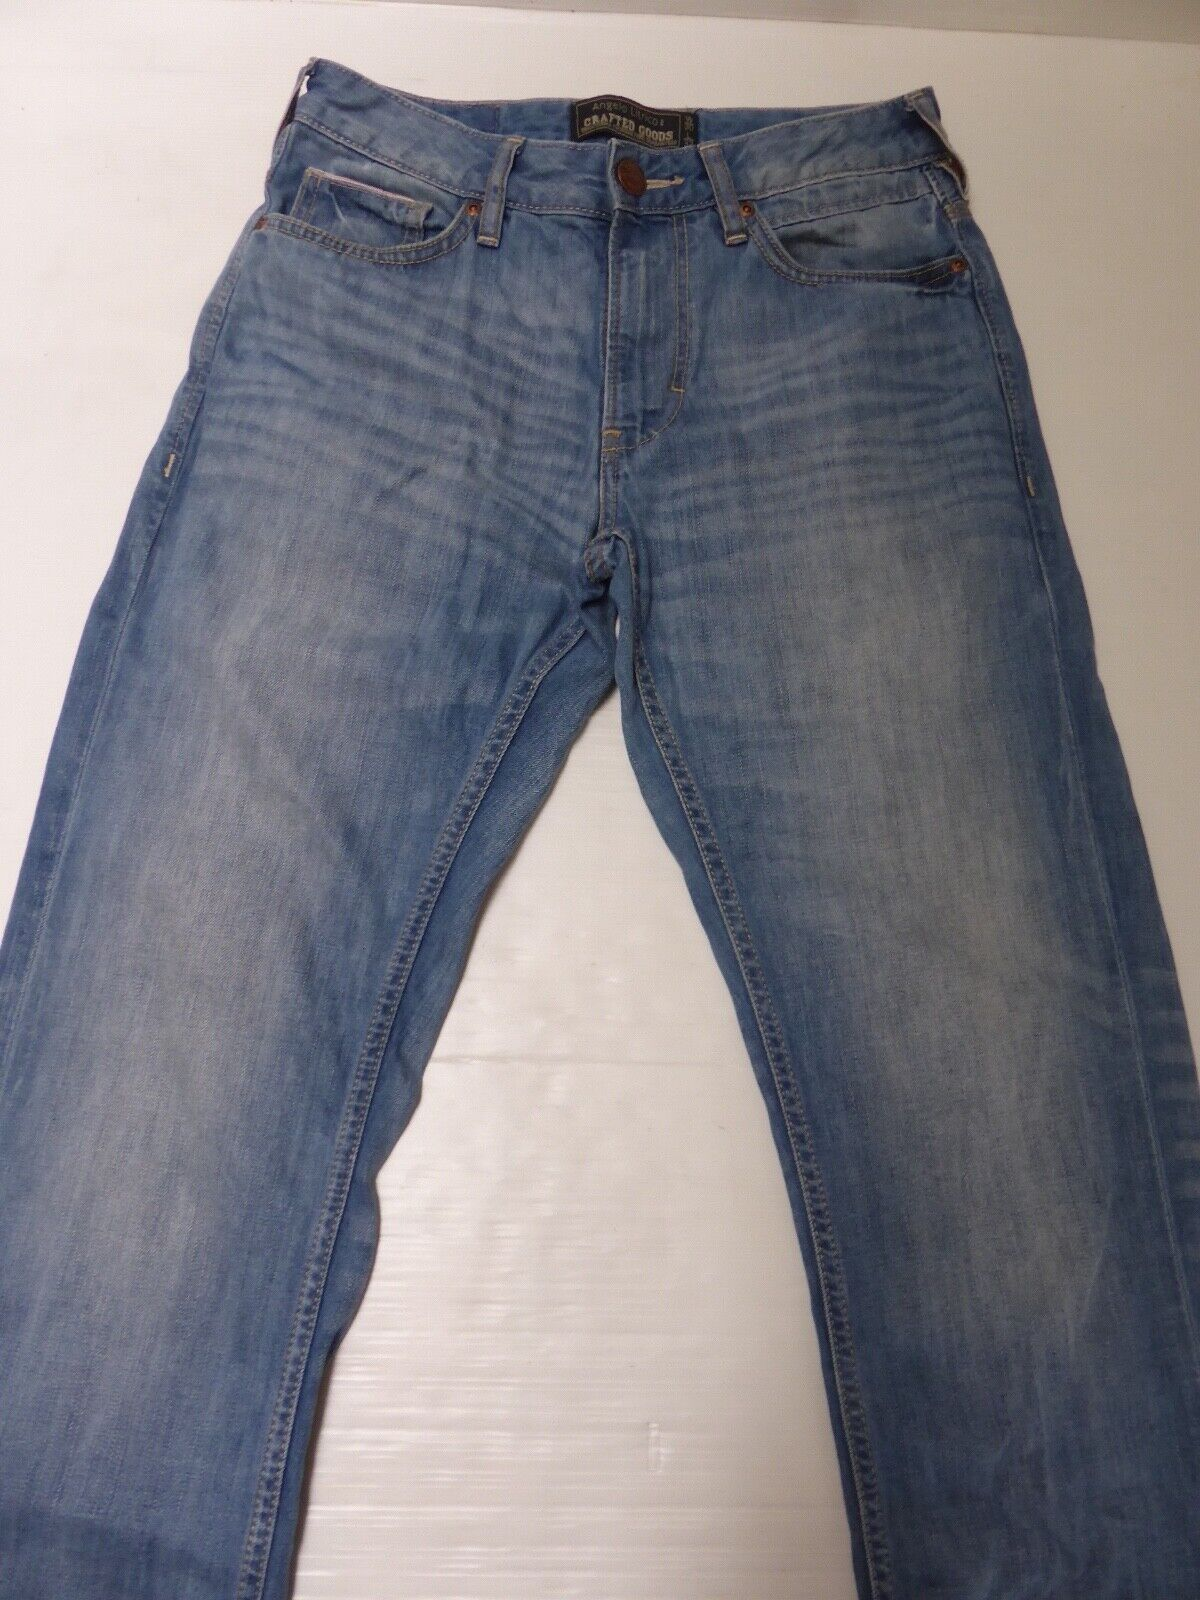 Jean denim droit 30w x 32l homme straight leg c&a angelo litrico crafted goods